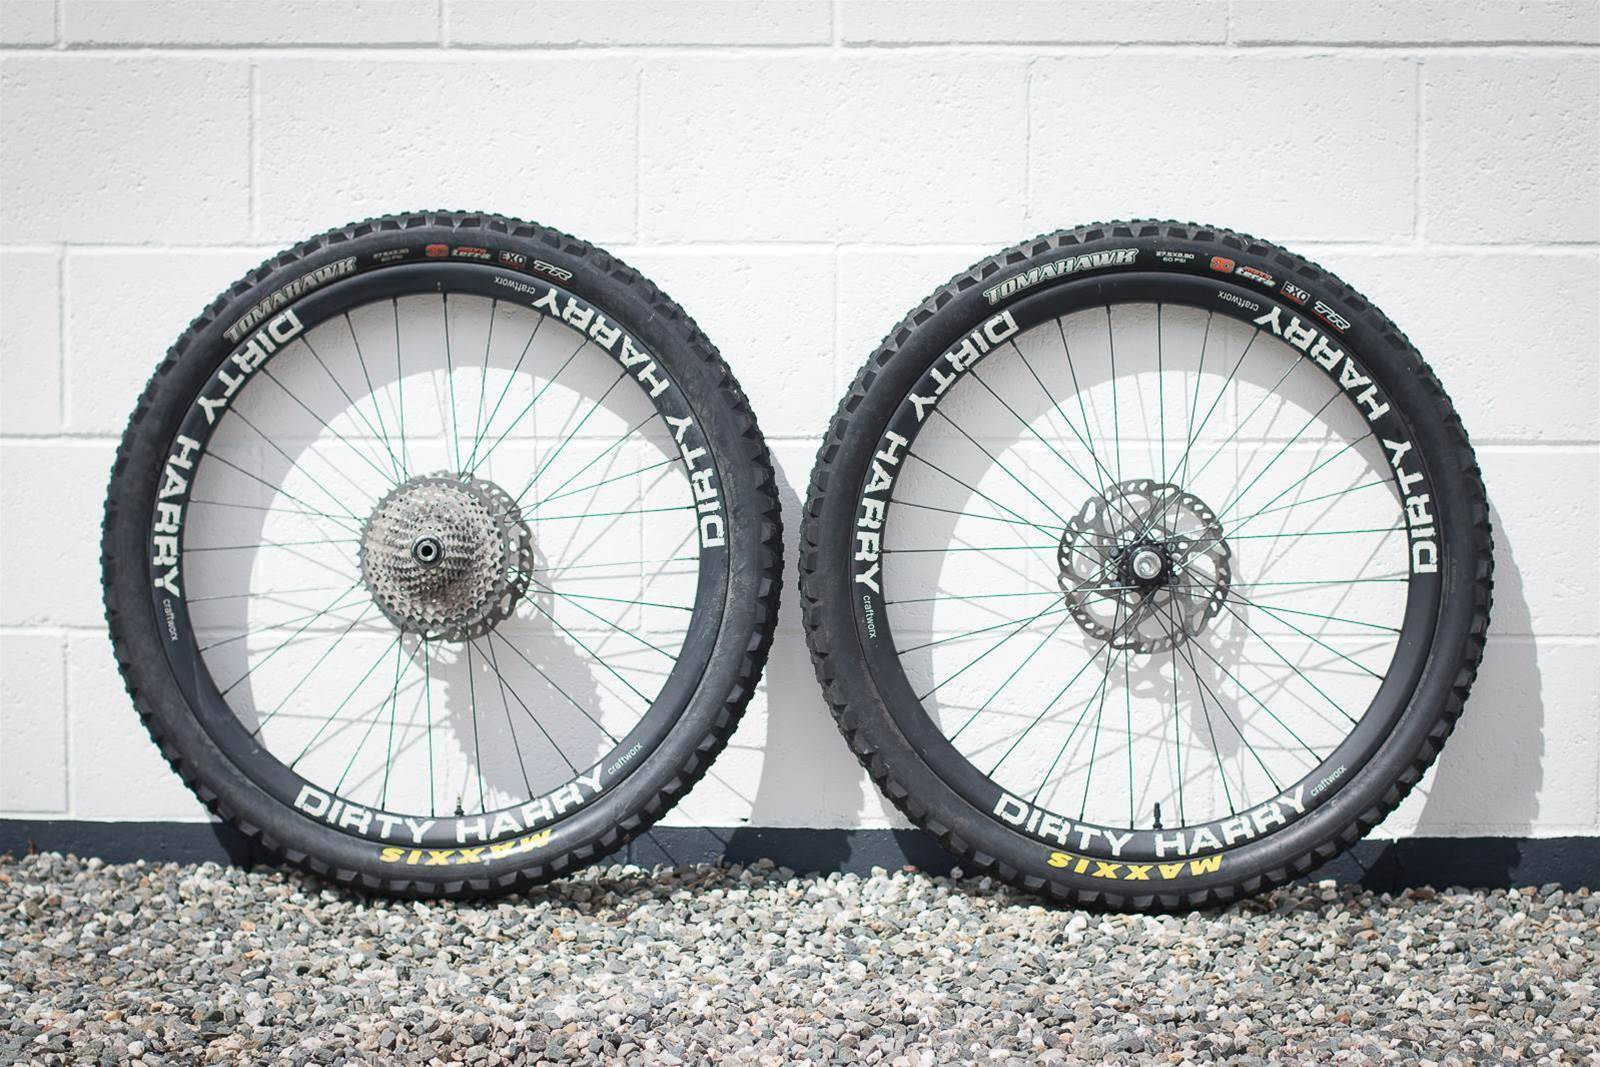 TESTED: Craftworx Dirty Harry Carbon wheels